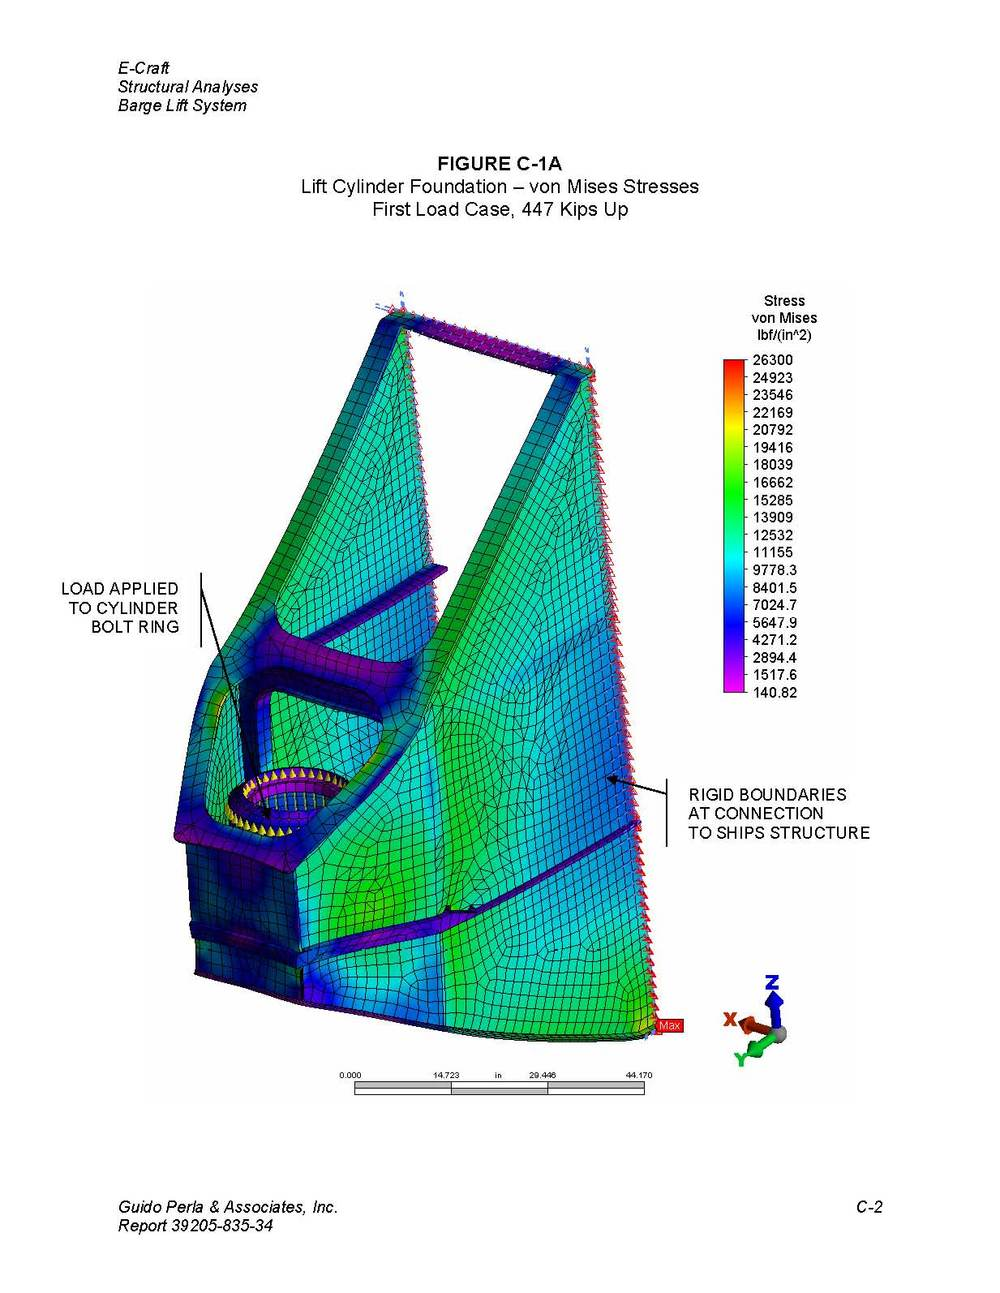 E-CRAFT_FINE_MESH_FEA_LIFT_SYSTEM_1.jpg